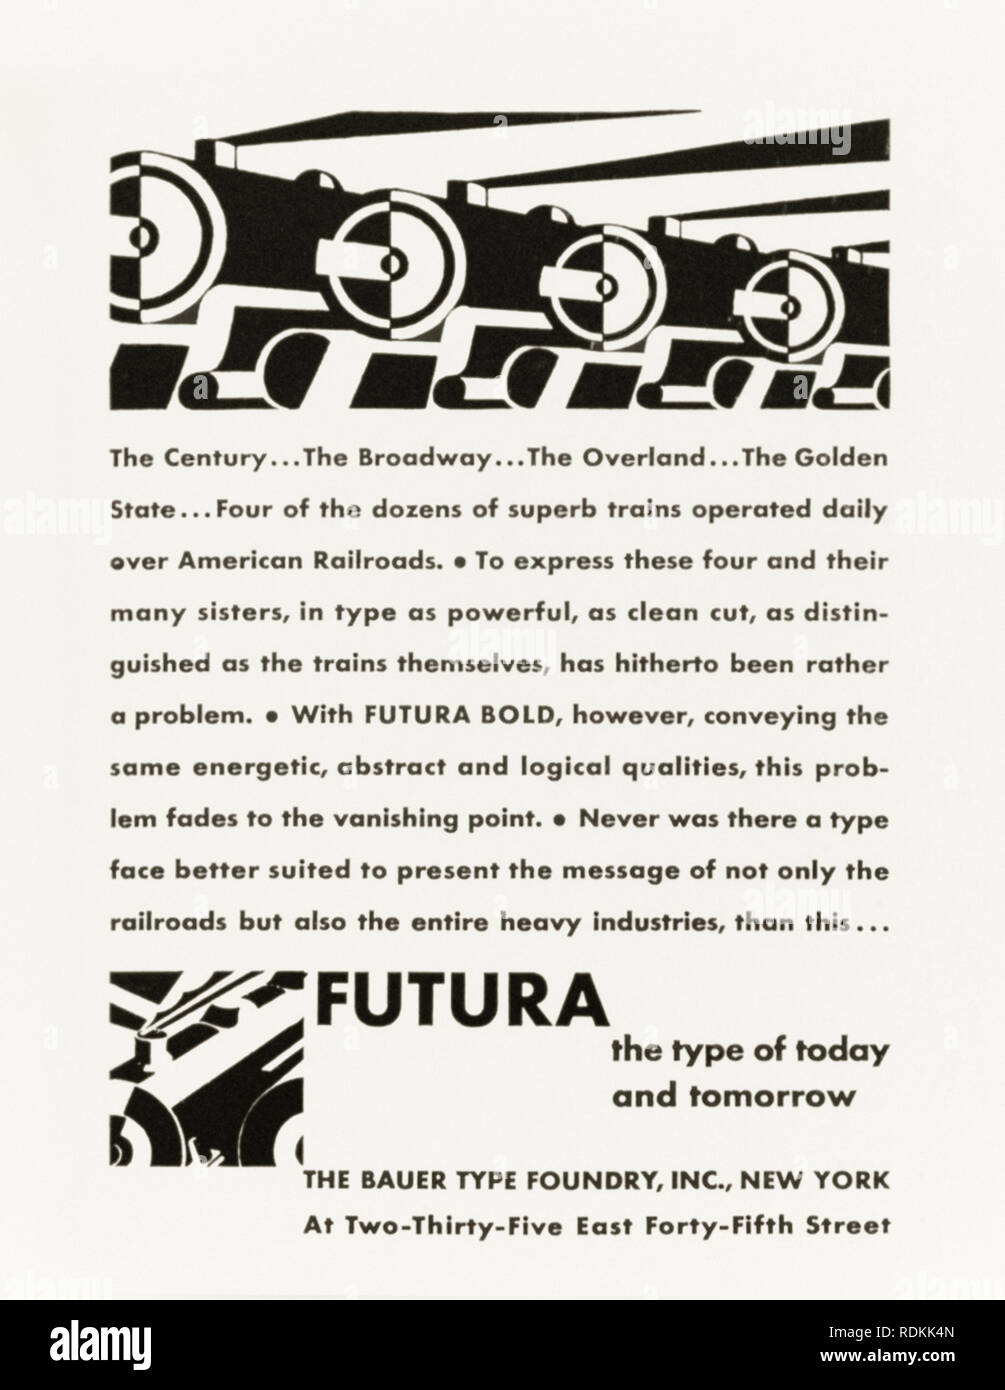 """FUTURA the type of today and tomorrow (die Schrift unserer Zeit)"" 1930 advert by The Bauer Type Foundry, Inc., NYC on the introduction of Futura, a sans-serif typeface designed by Paul Renner (1878-1956) in 1927,  first release in North America. The typeface has aged well and is still widely used in popular culture. Credit: Private Collection / AF Fotografie - Stock Image"